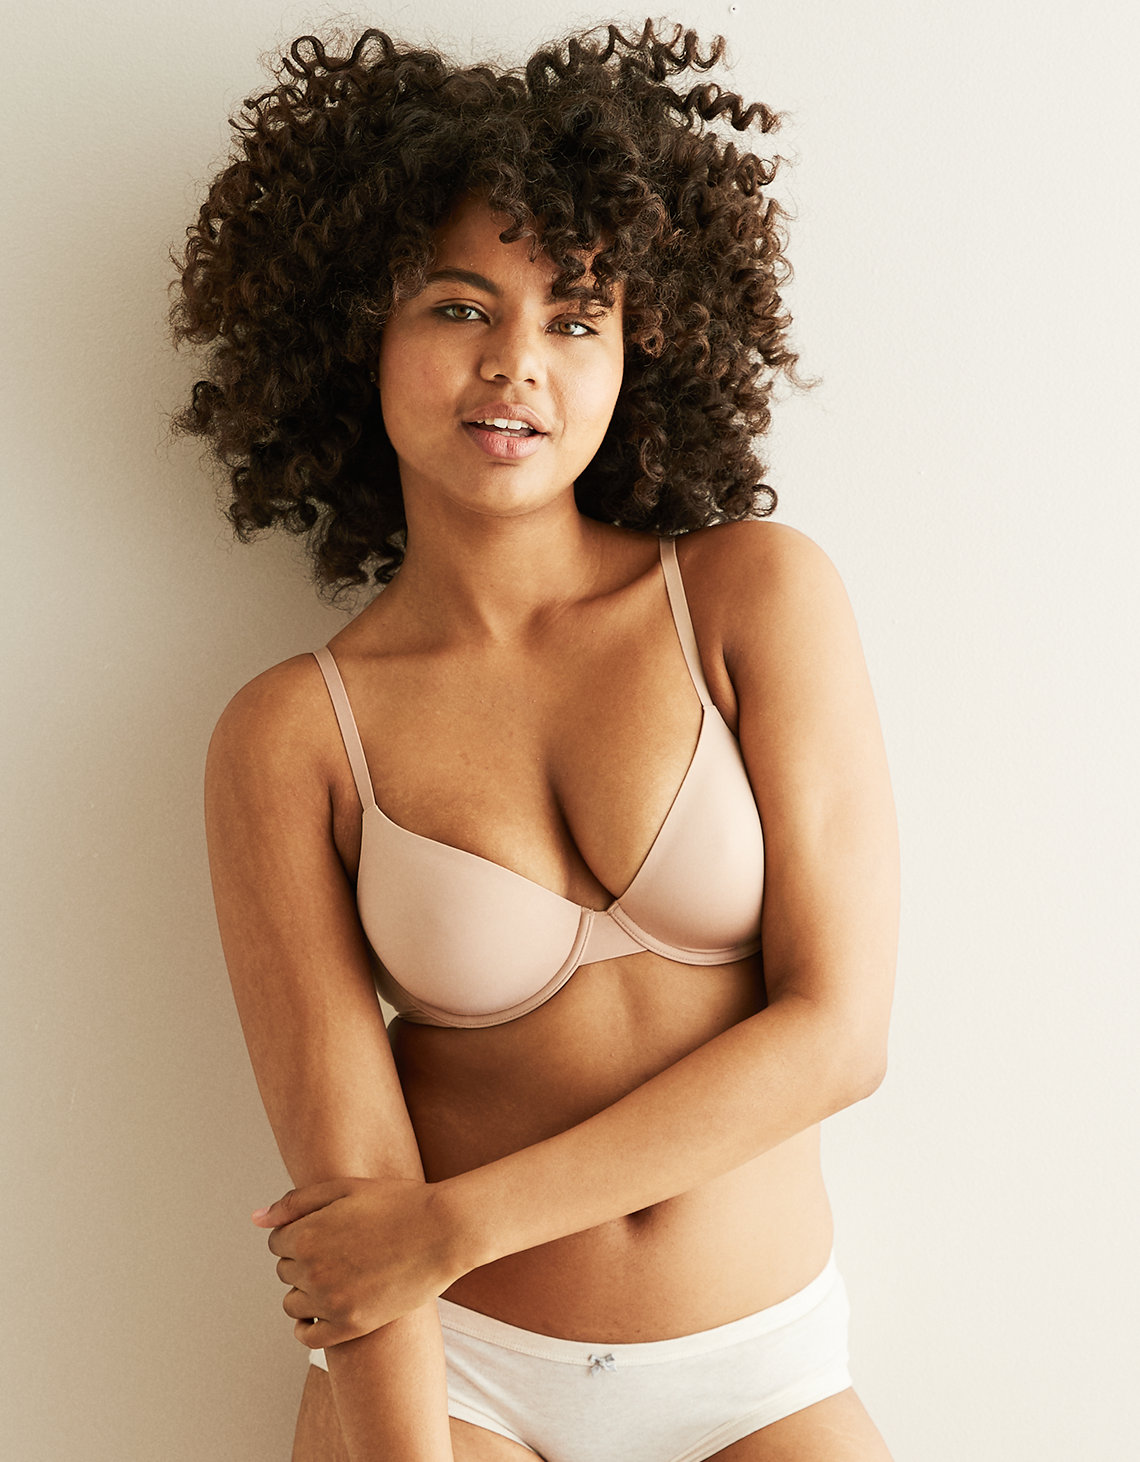 bd61281a4 Aerie Real Me Full Coverage Lightly Lined Bra. Placeholder image. Product  Image